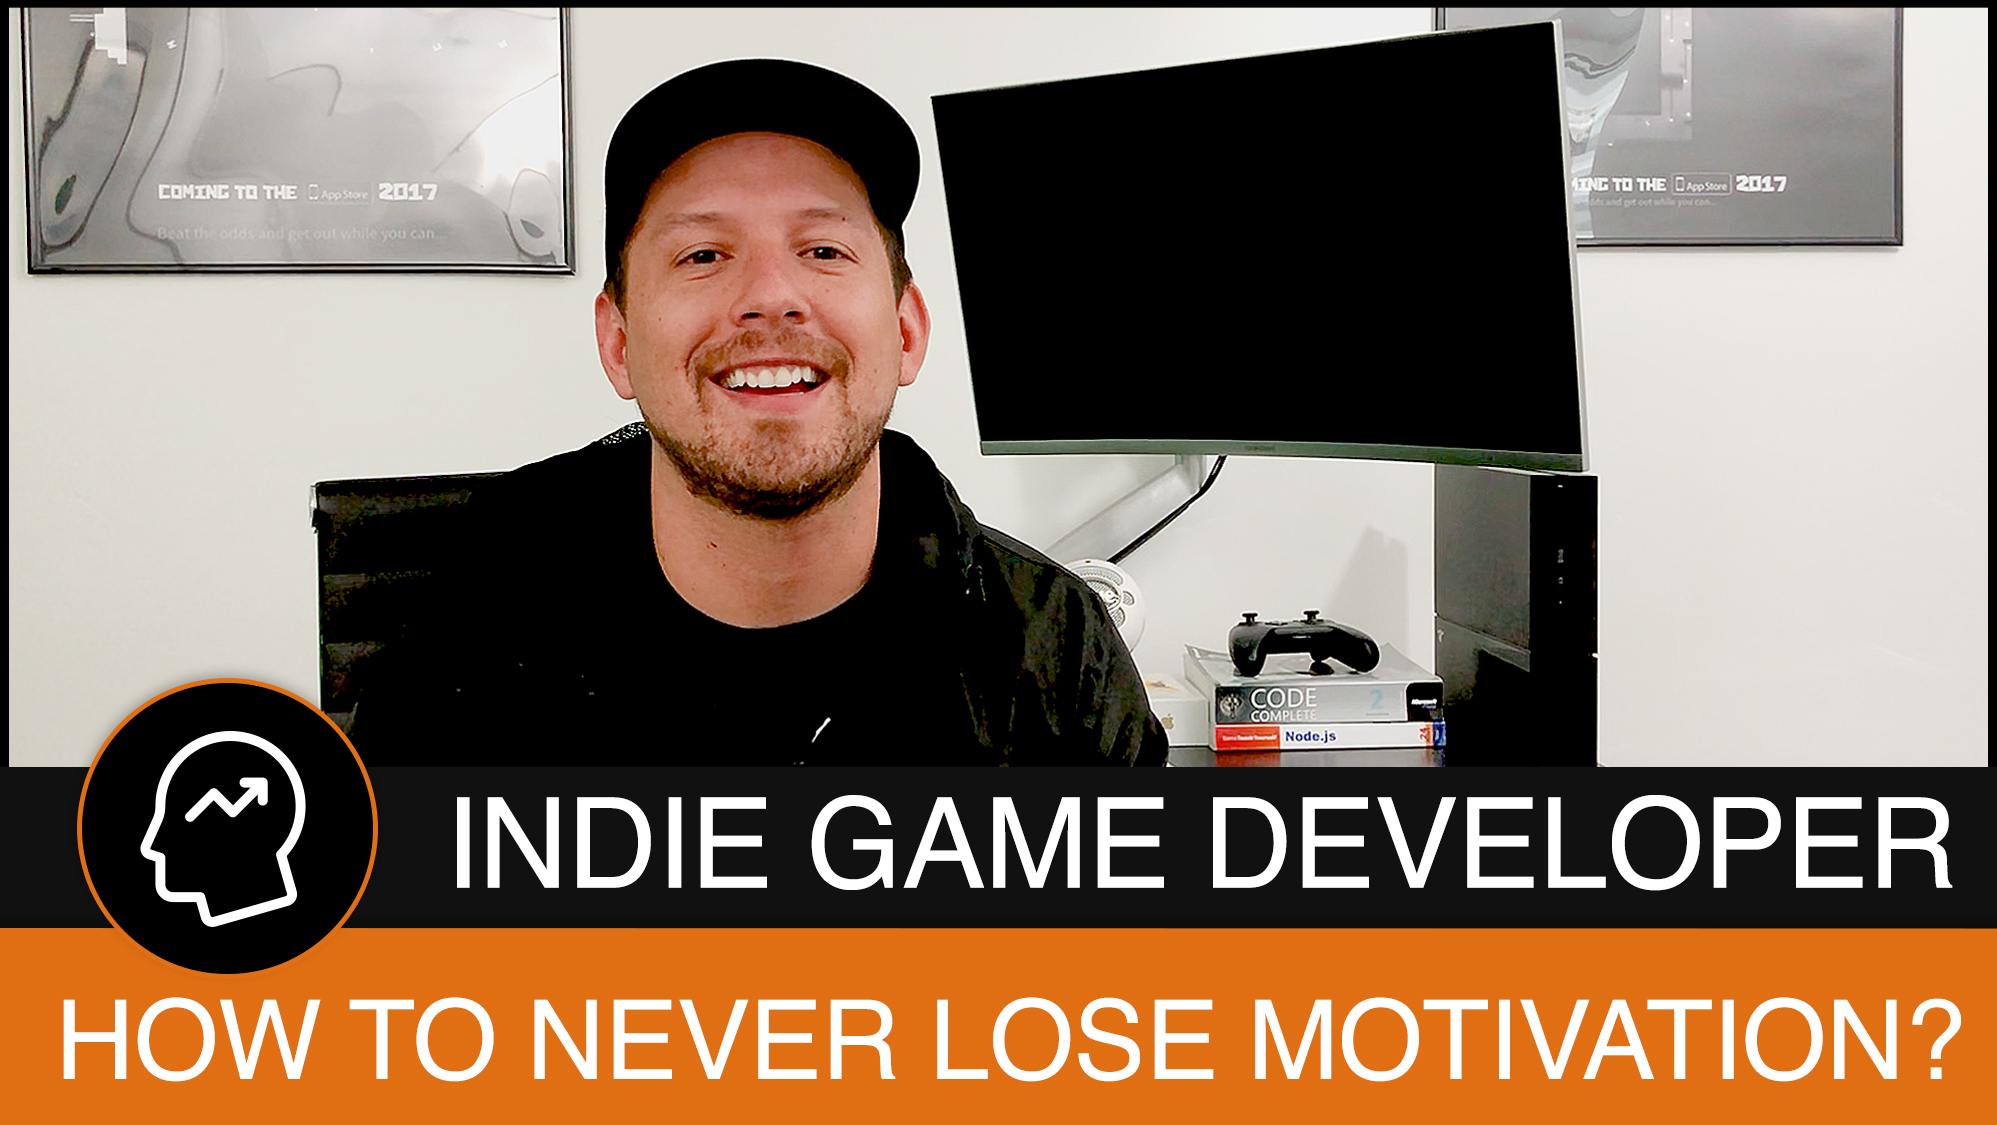 How to never lose motivation while working on indie games?